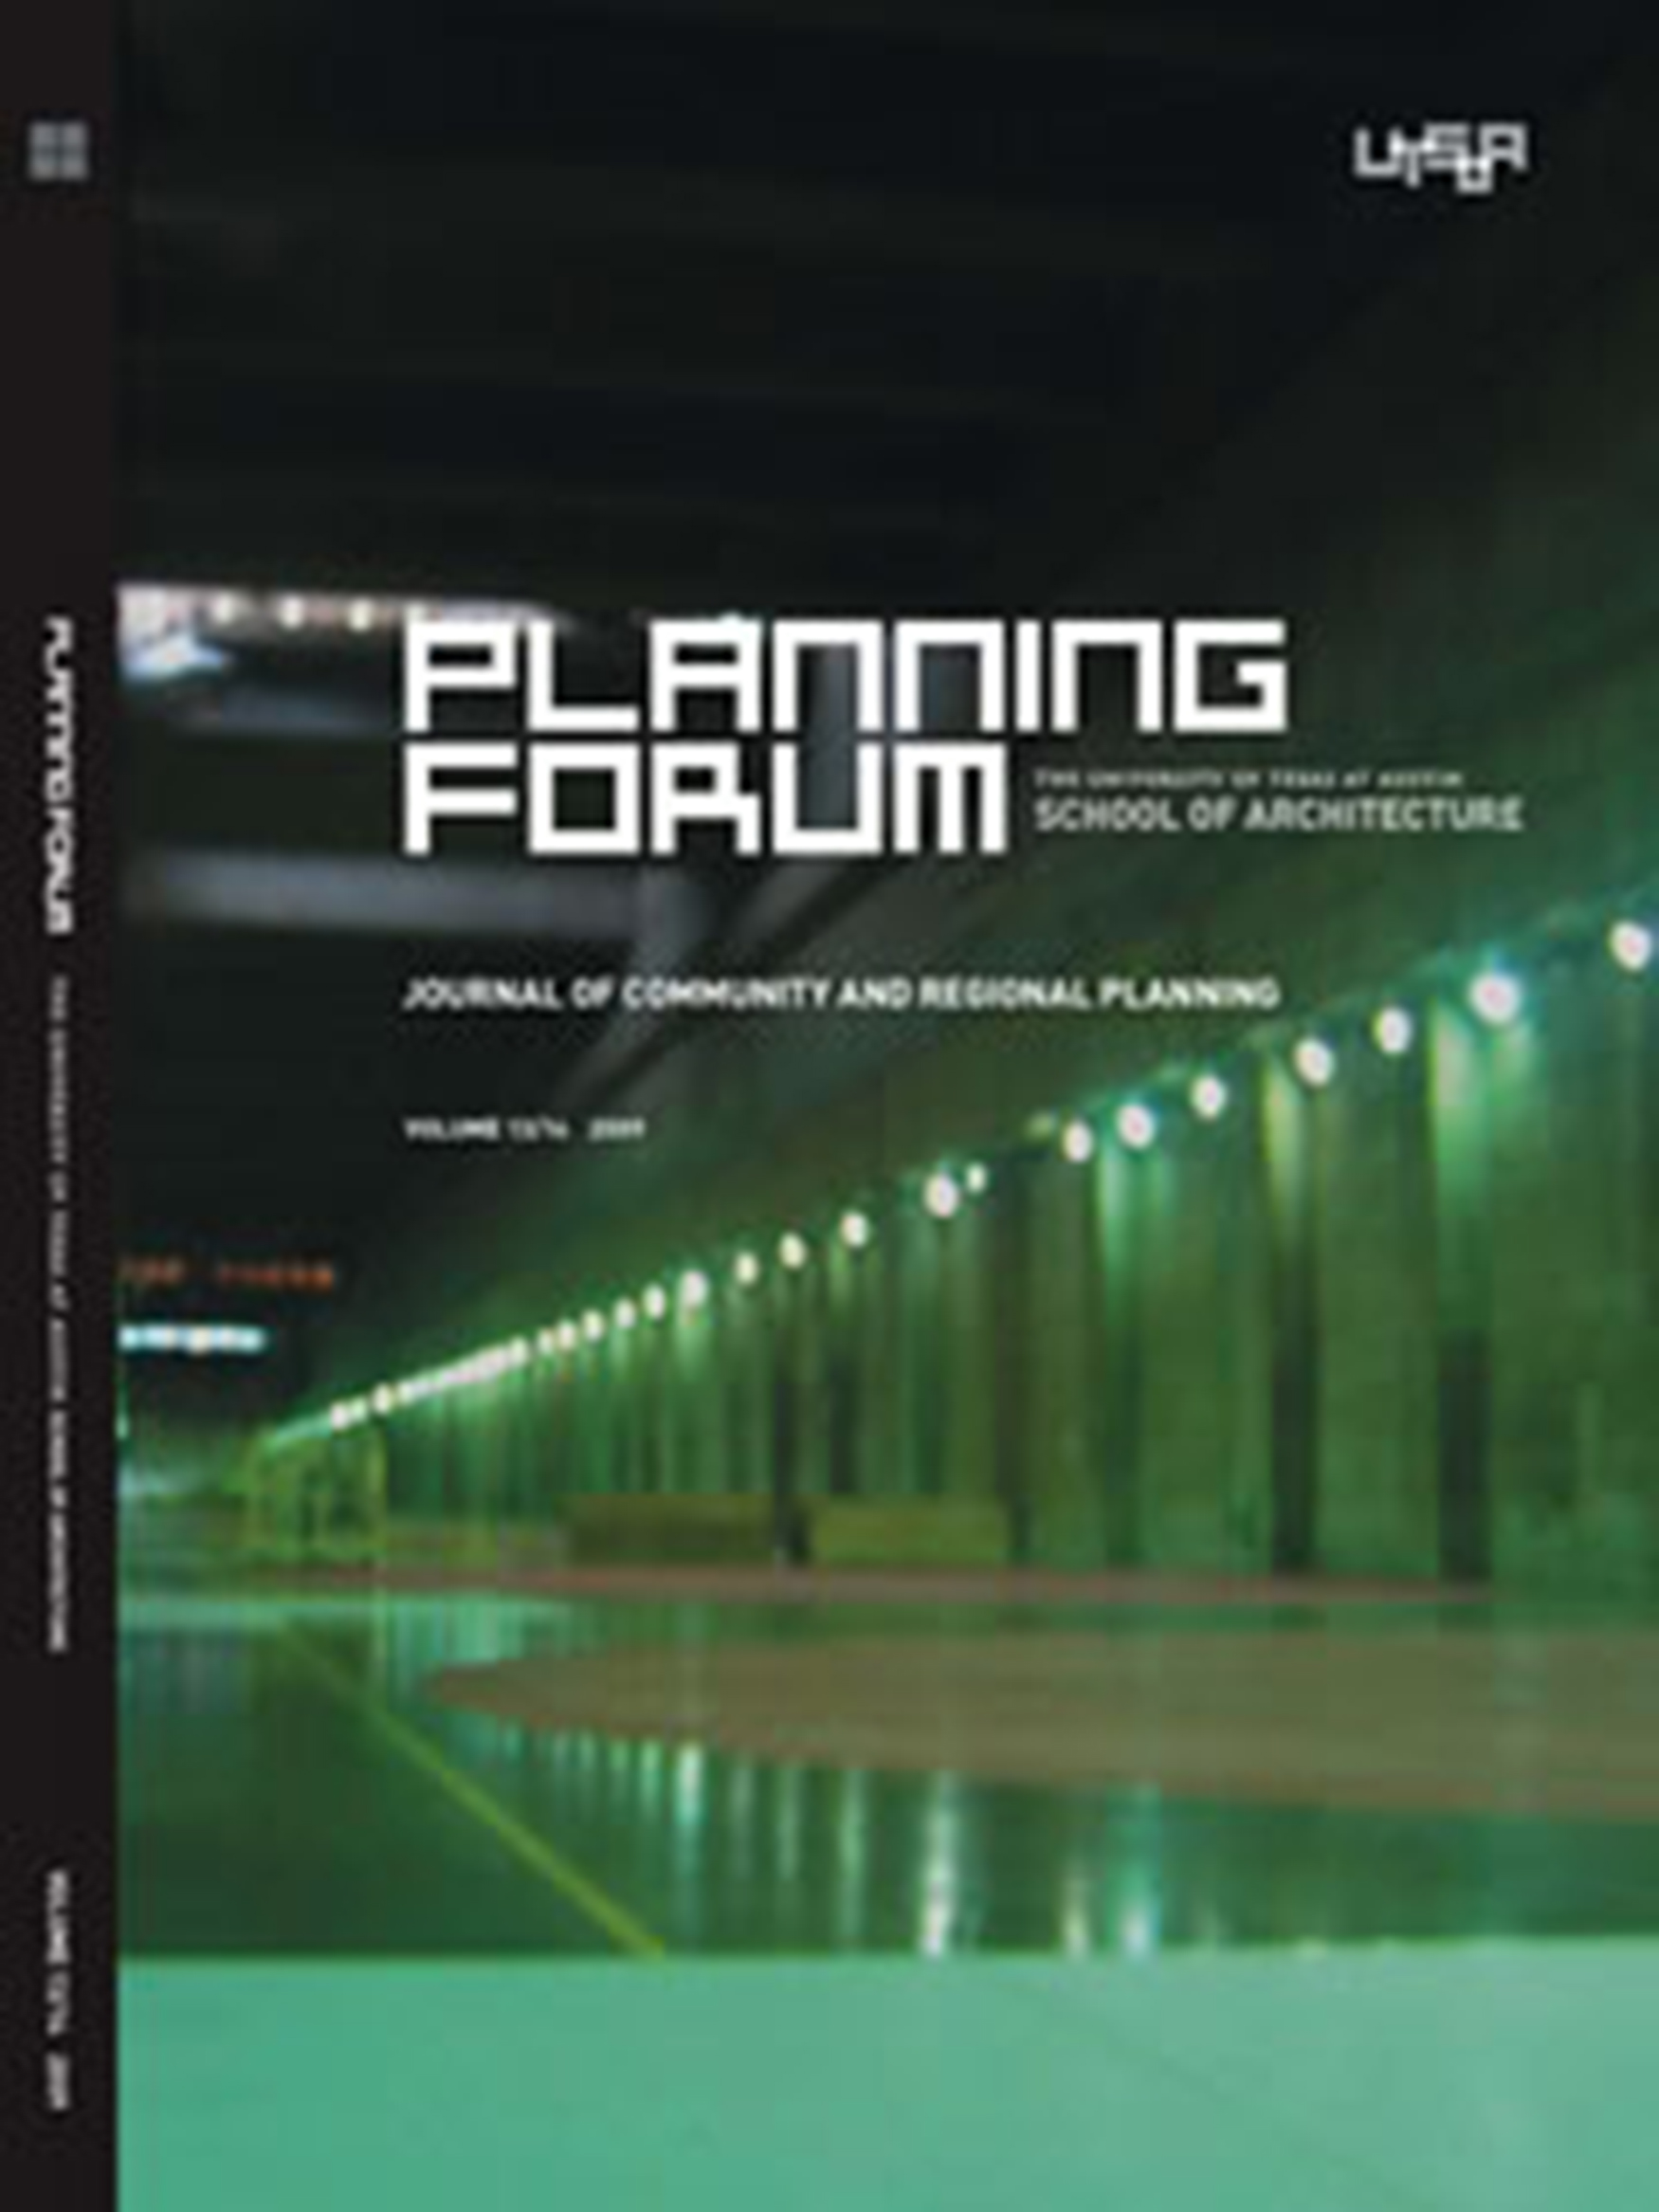 Planning Forum Volume 13-14 cover